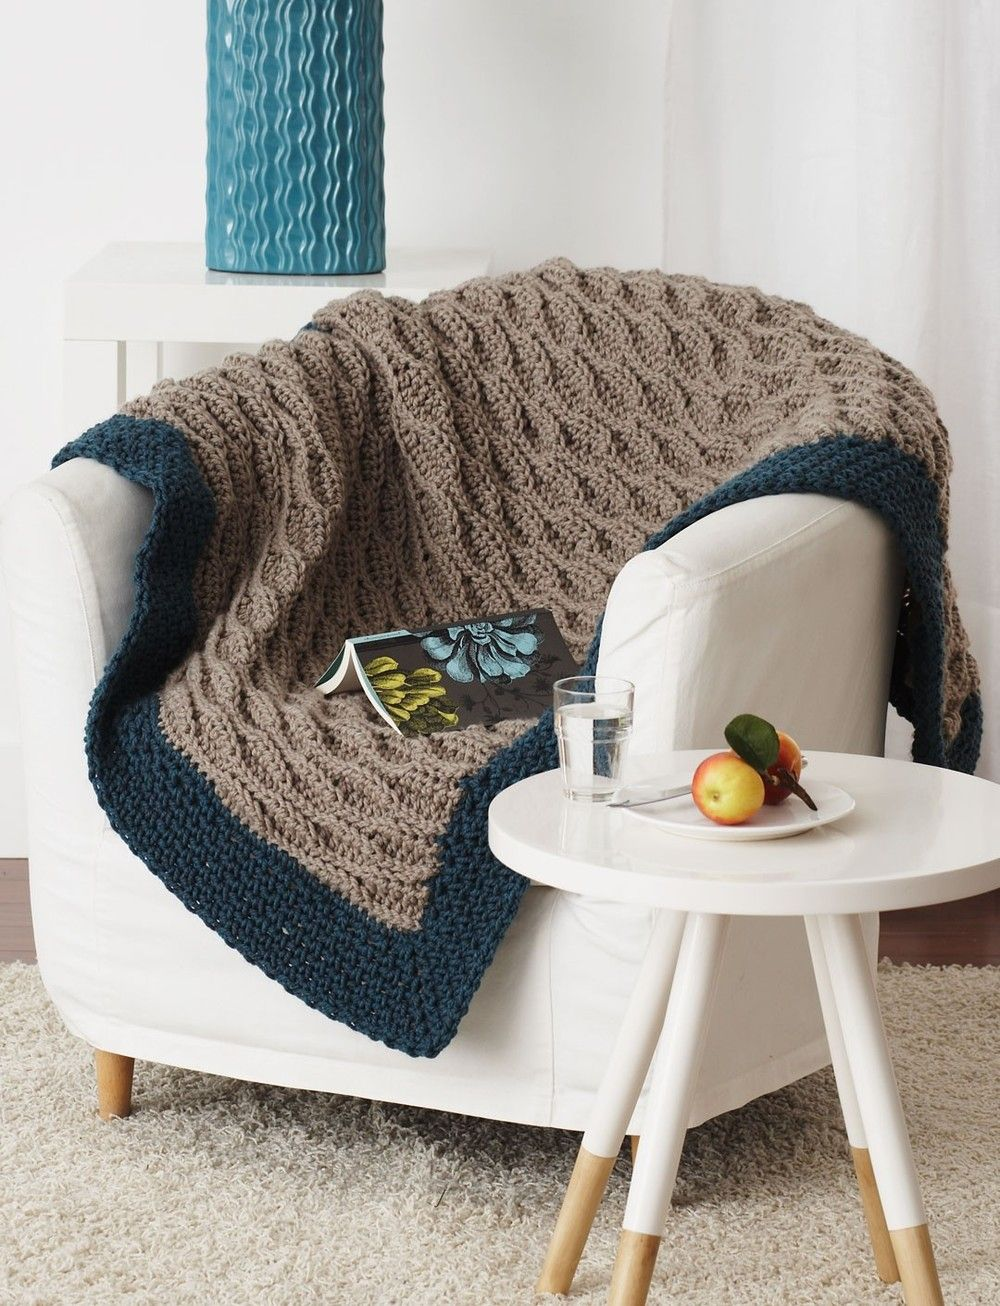 Make it quick afghan afghans quick crochet patterns and crochet make it quick afghan free crochet afghan patternscrochet bankloansurffo Images